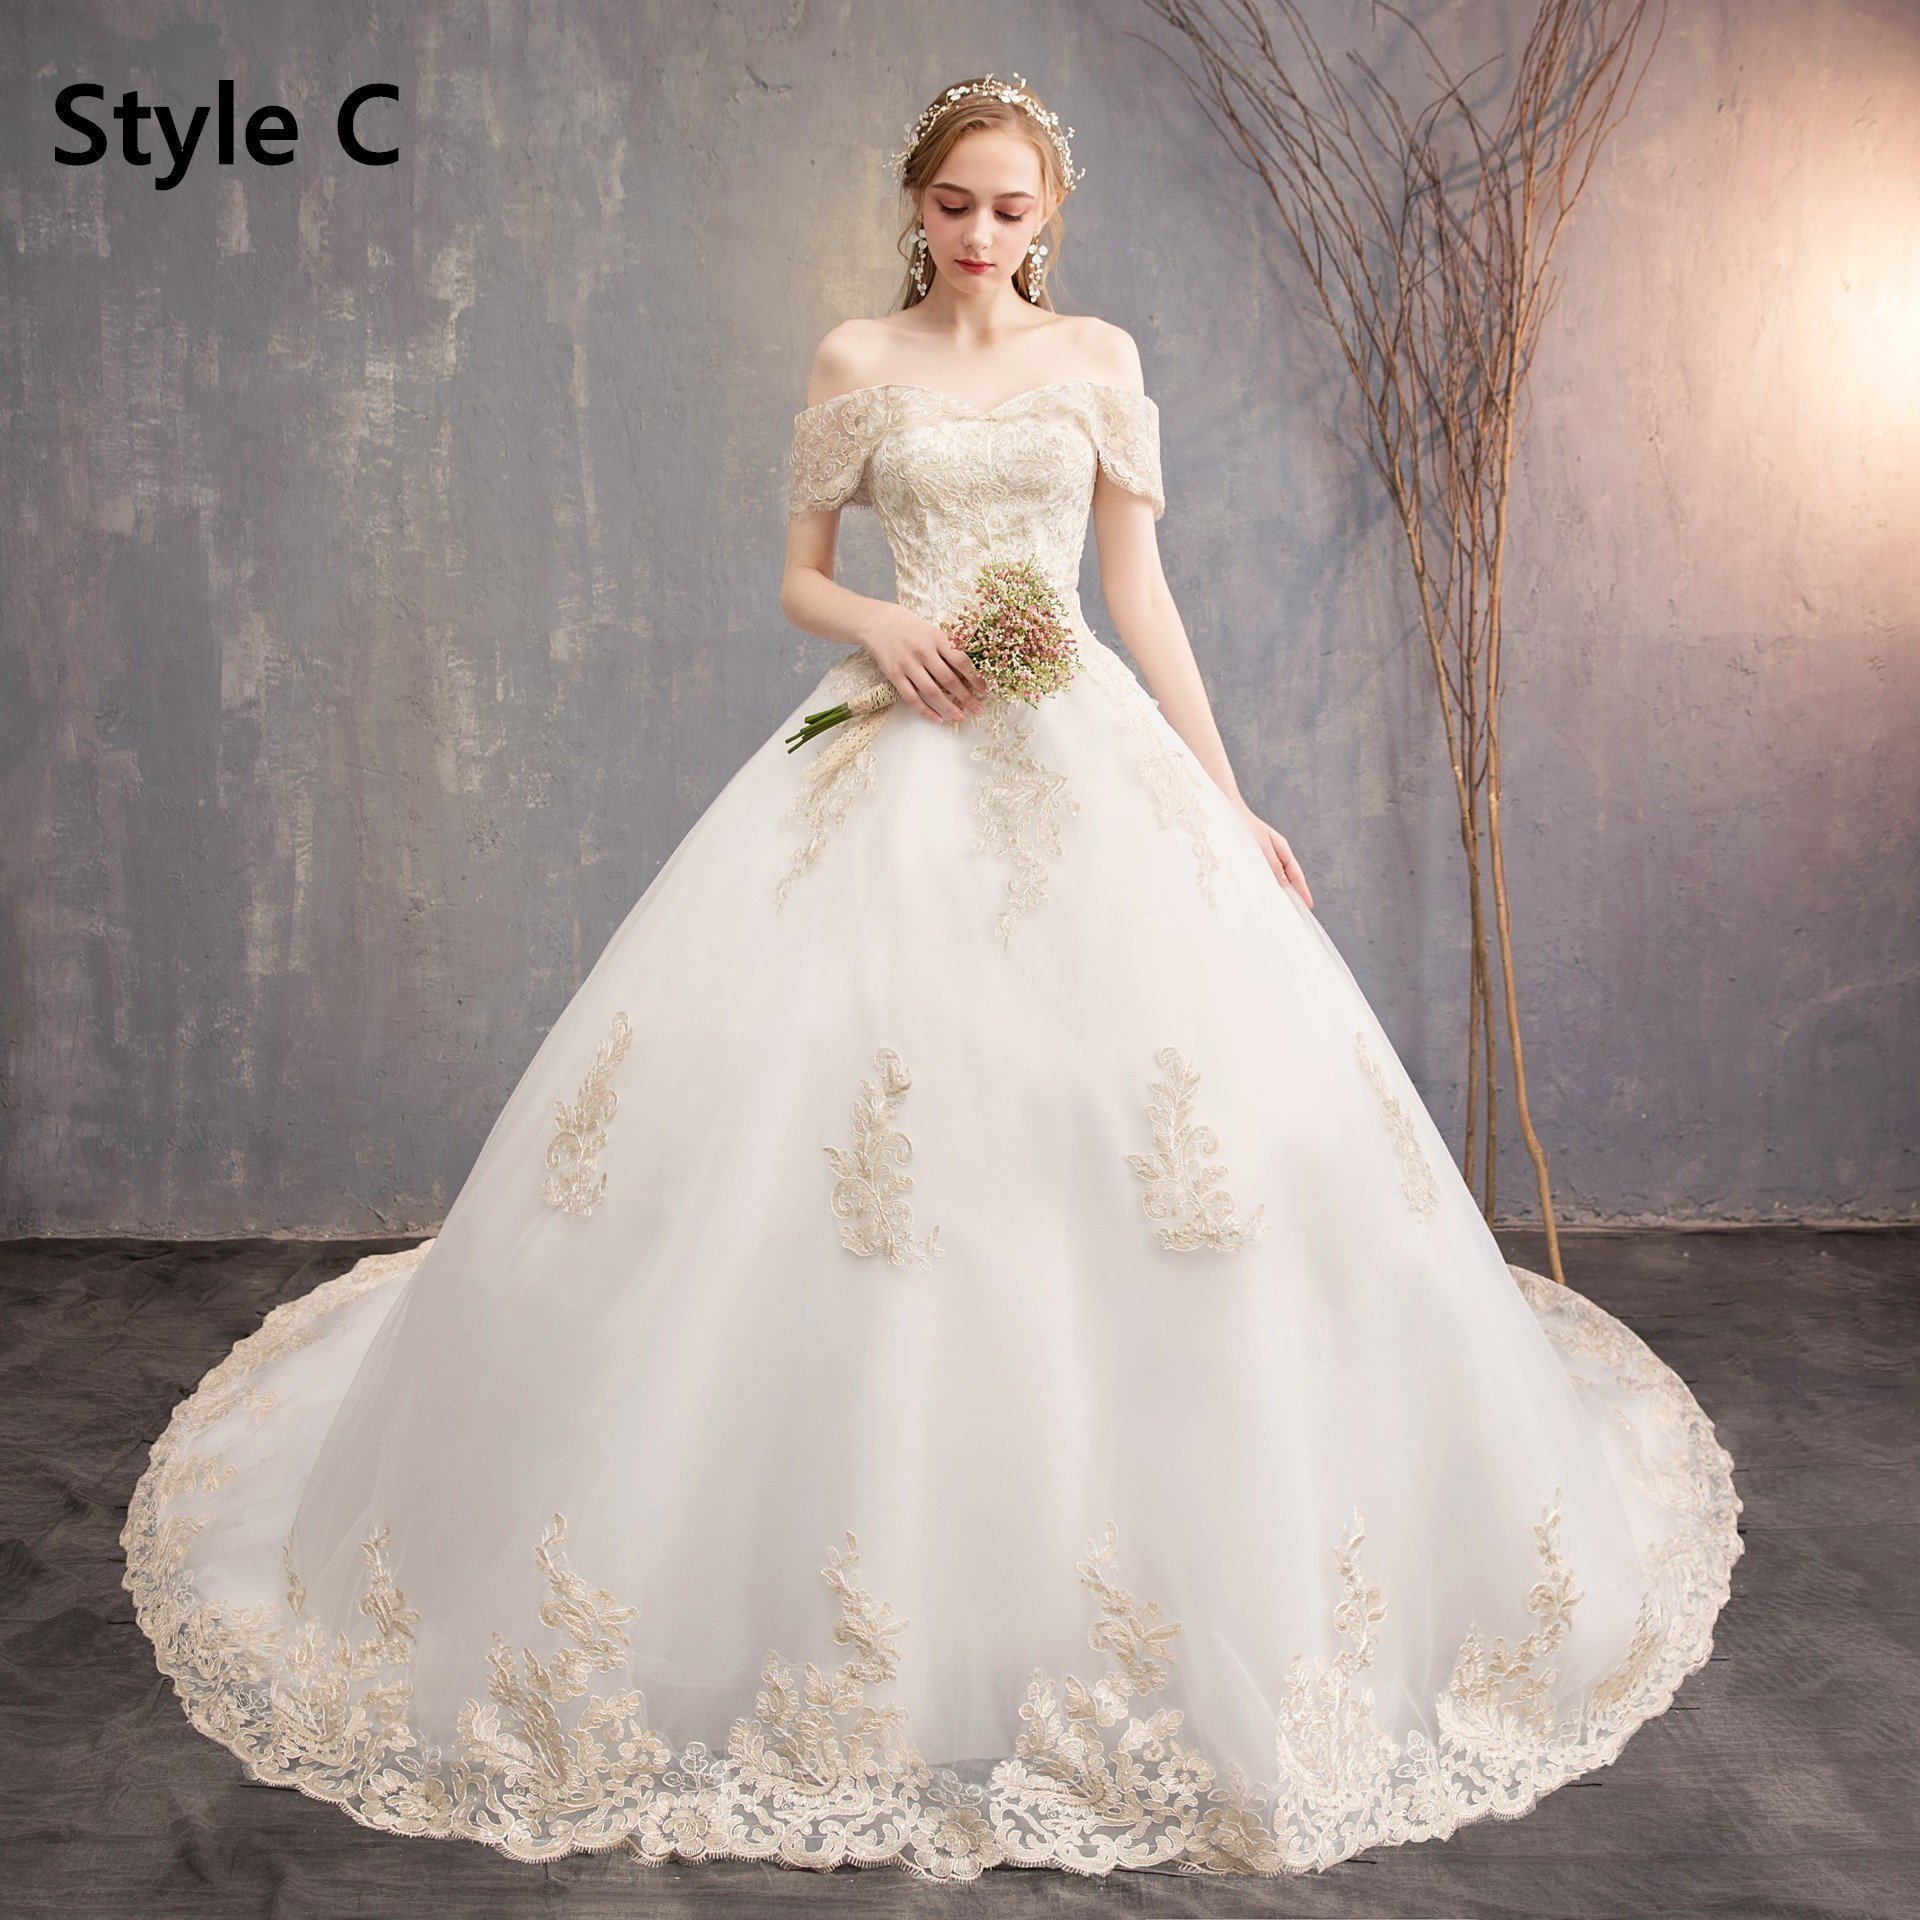 Best Wedding Dresses Lace Dresses Dresses To Wear To A Formal Wedding Wedding Dresses 2020 Spanish Lace Wedding Dress Wedding Monogram Tea Length Bridal Gowns Buy Mother Daughter Dresses For Indian Weddings